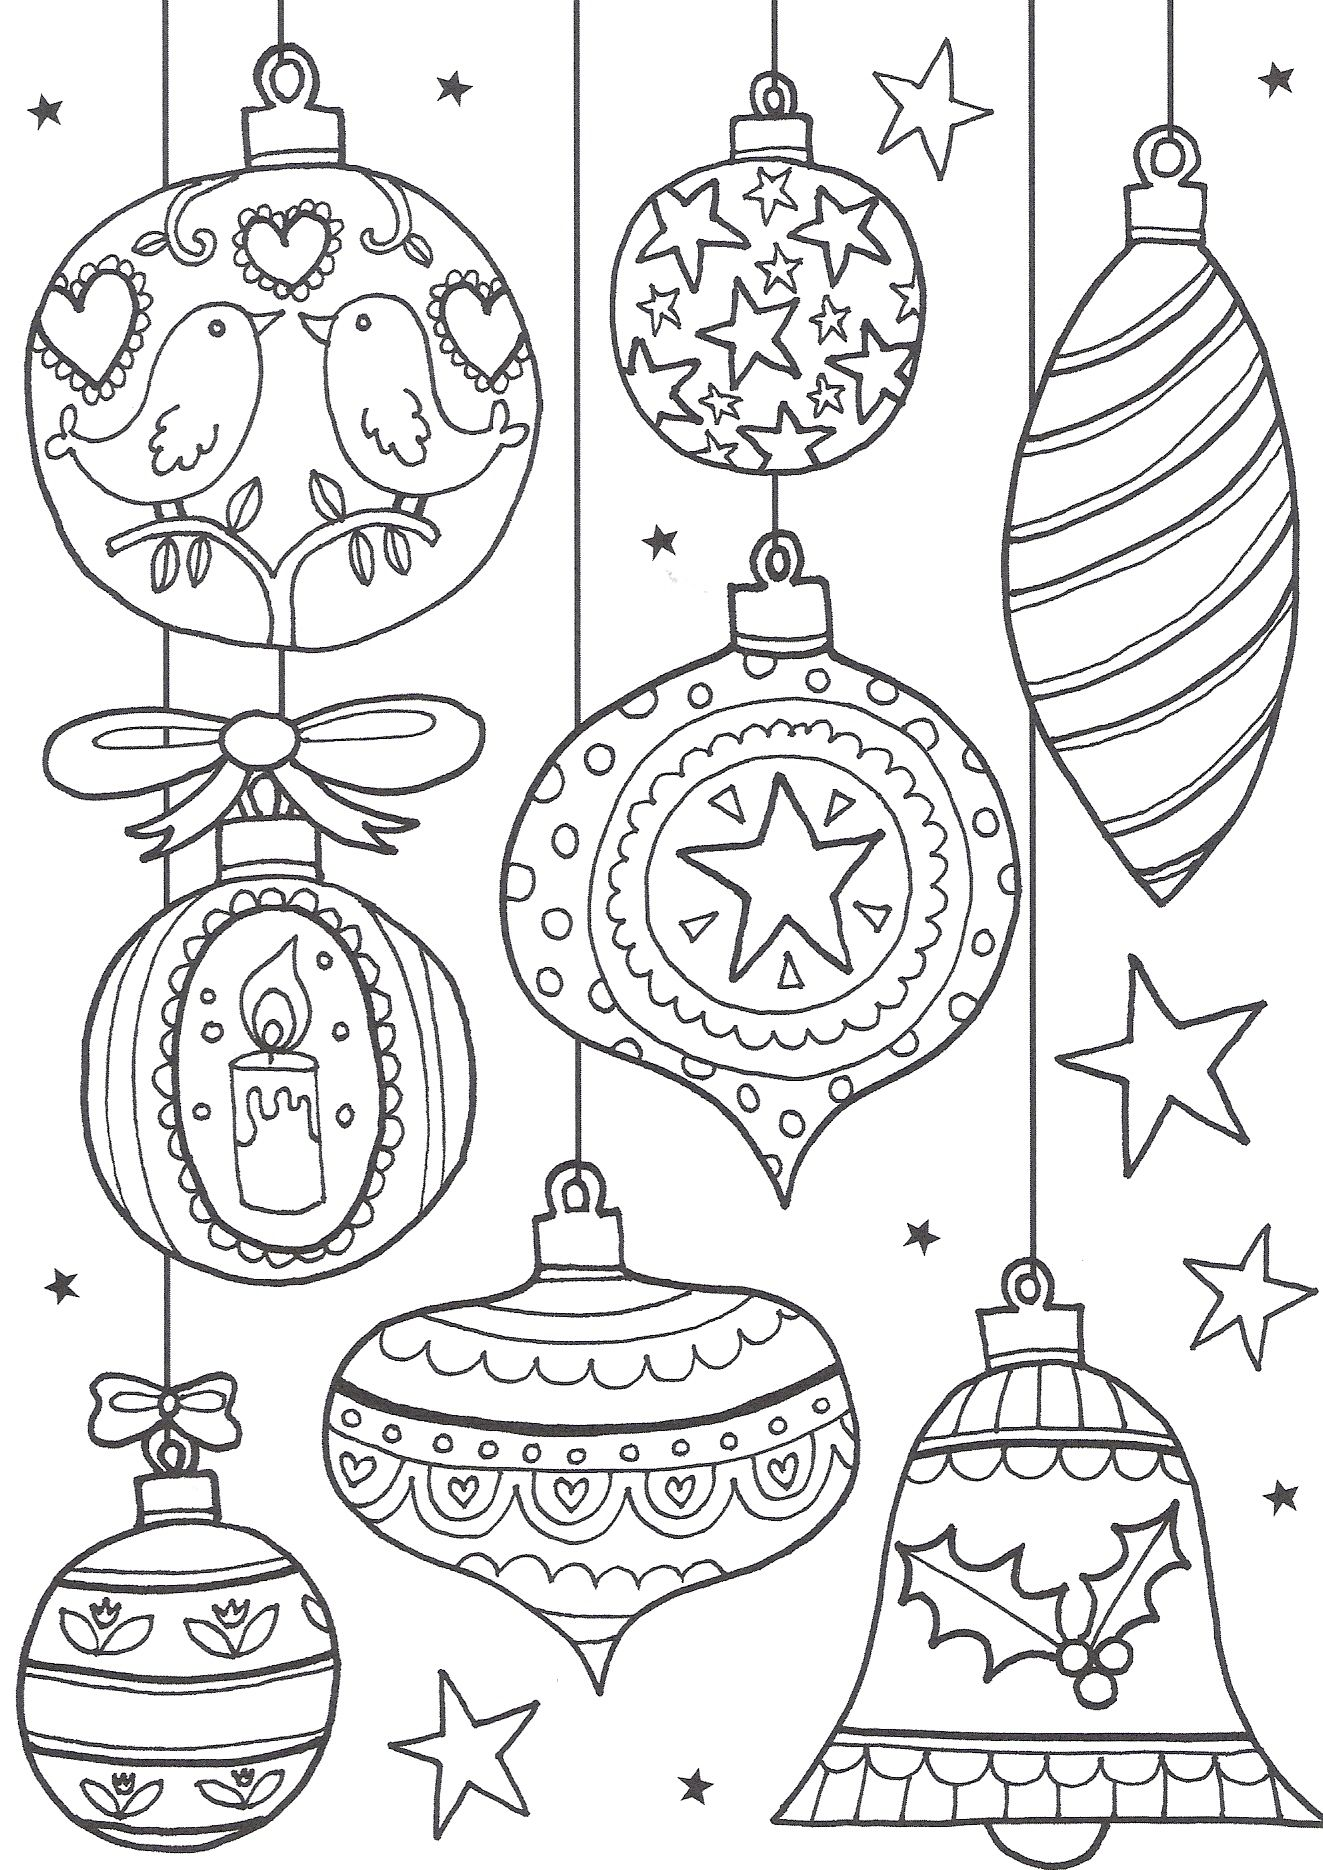 Christmas Adults Coloring Pages With Free Colouring For The Ultimate Roundup